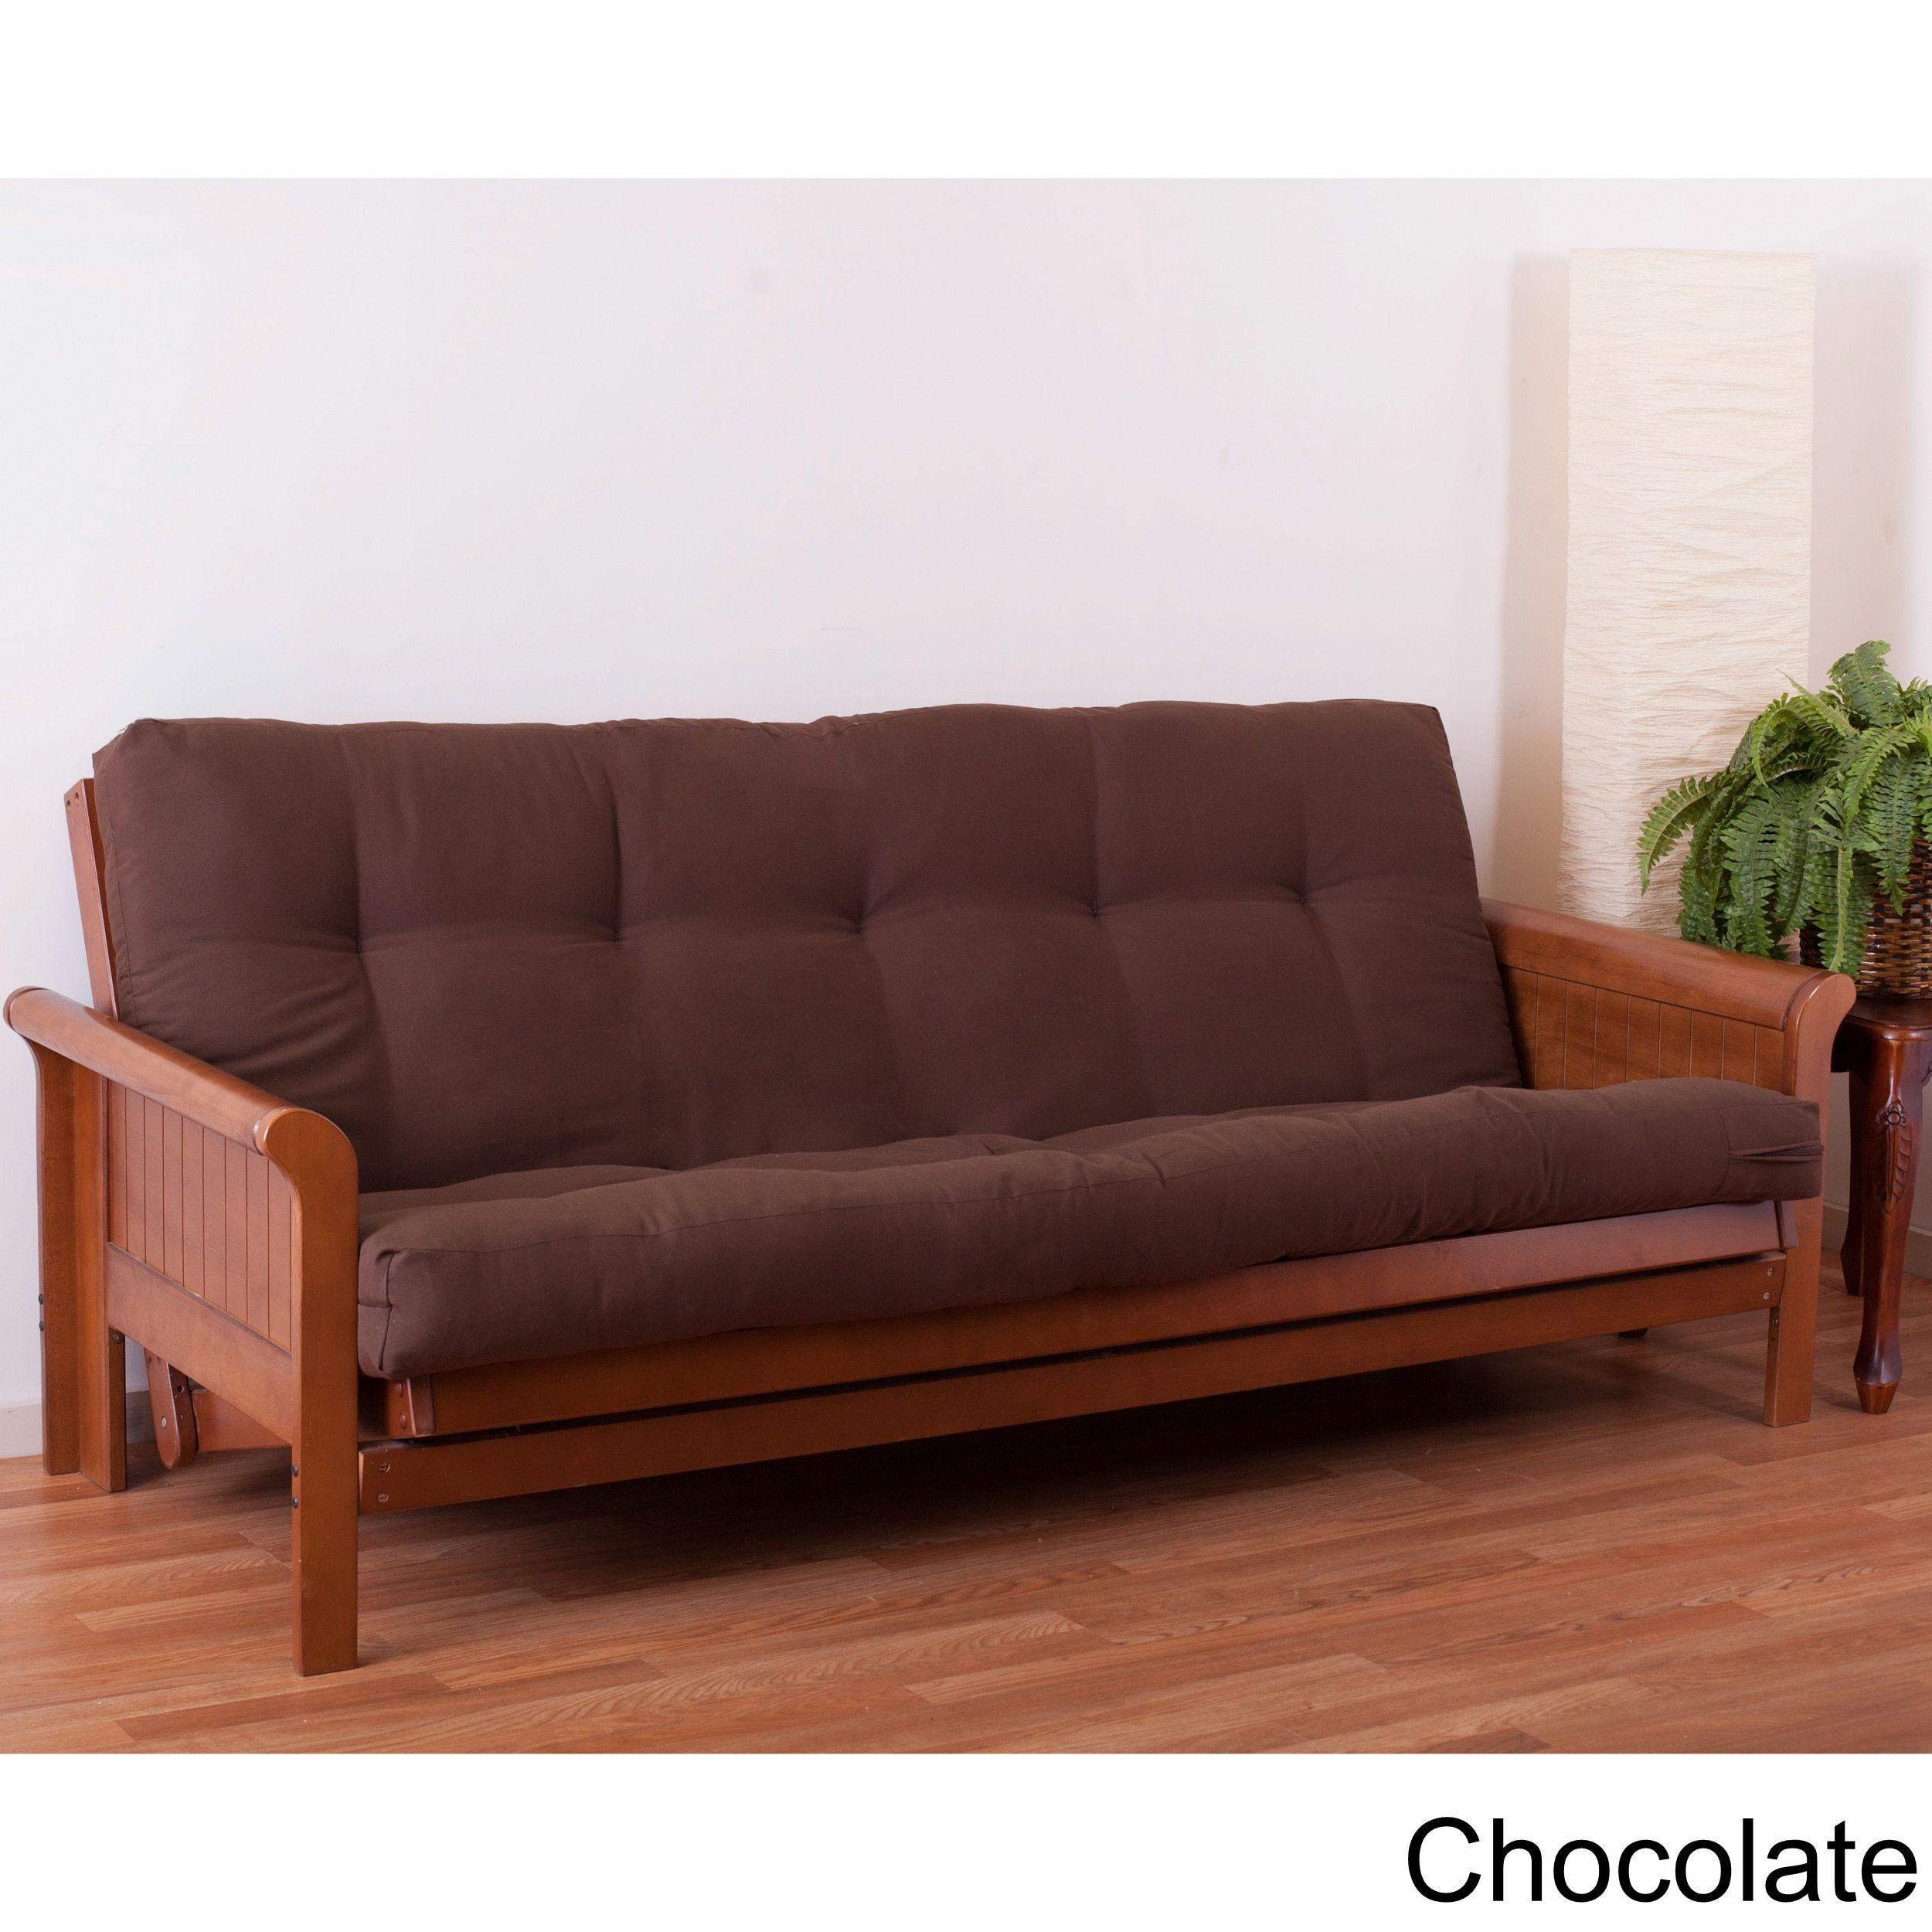 full cool fresh ideas wicker futon unique world patio furniture the loveseat best sleeper inspirational futons size naoki italy of home yoga design by